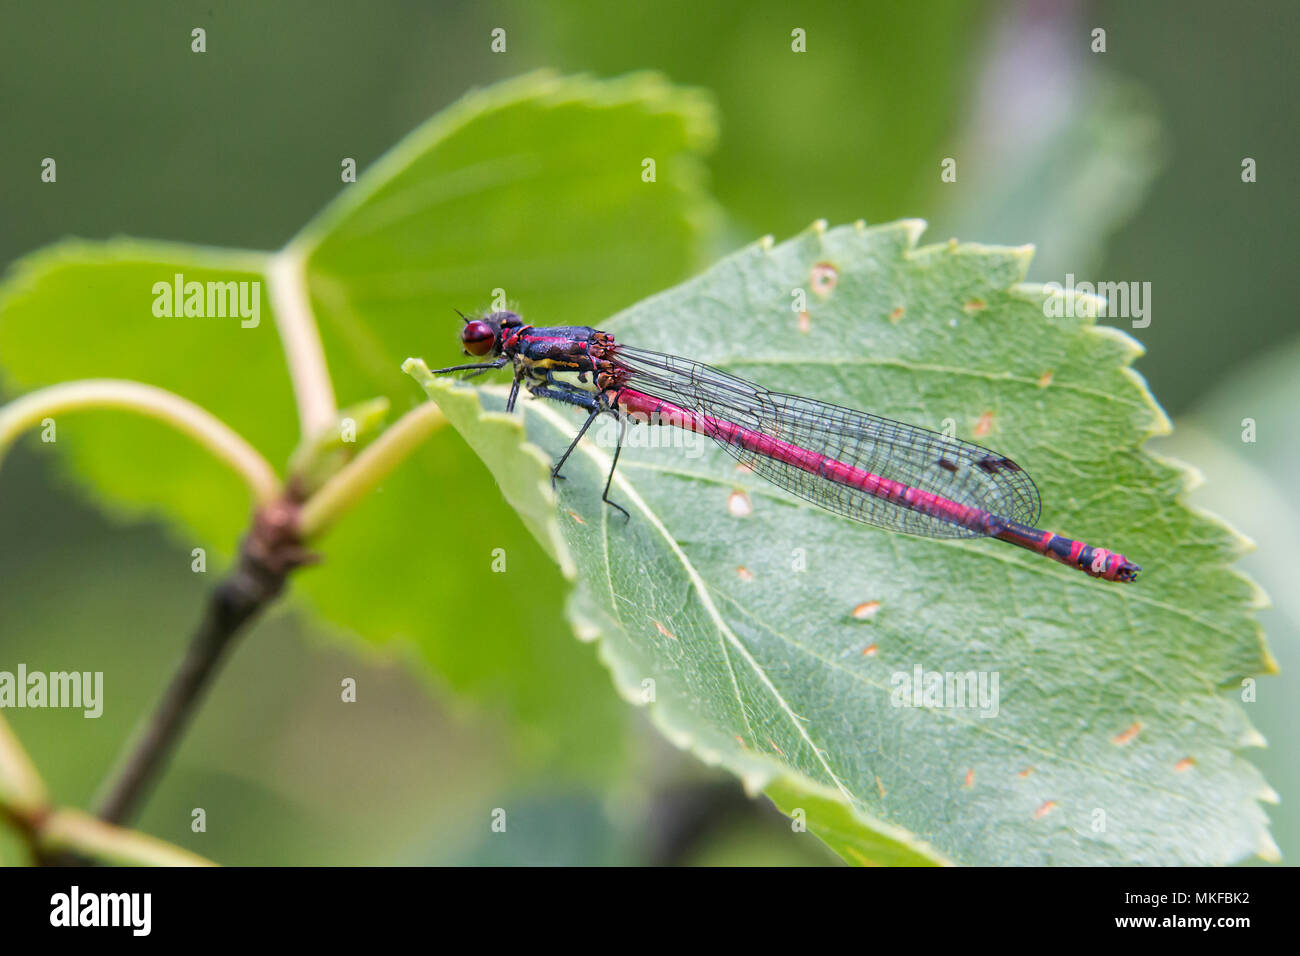 Damselfly (Pyrrhosoma nymphula) On a leaf in summer, Lispach peat bog, Vosges, France Stock Photo